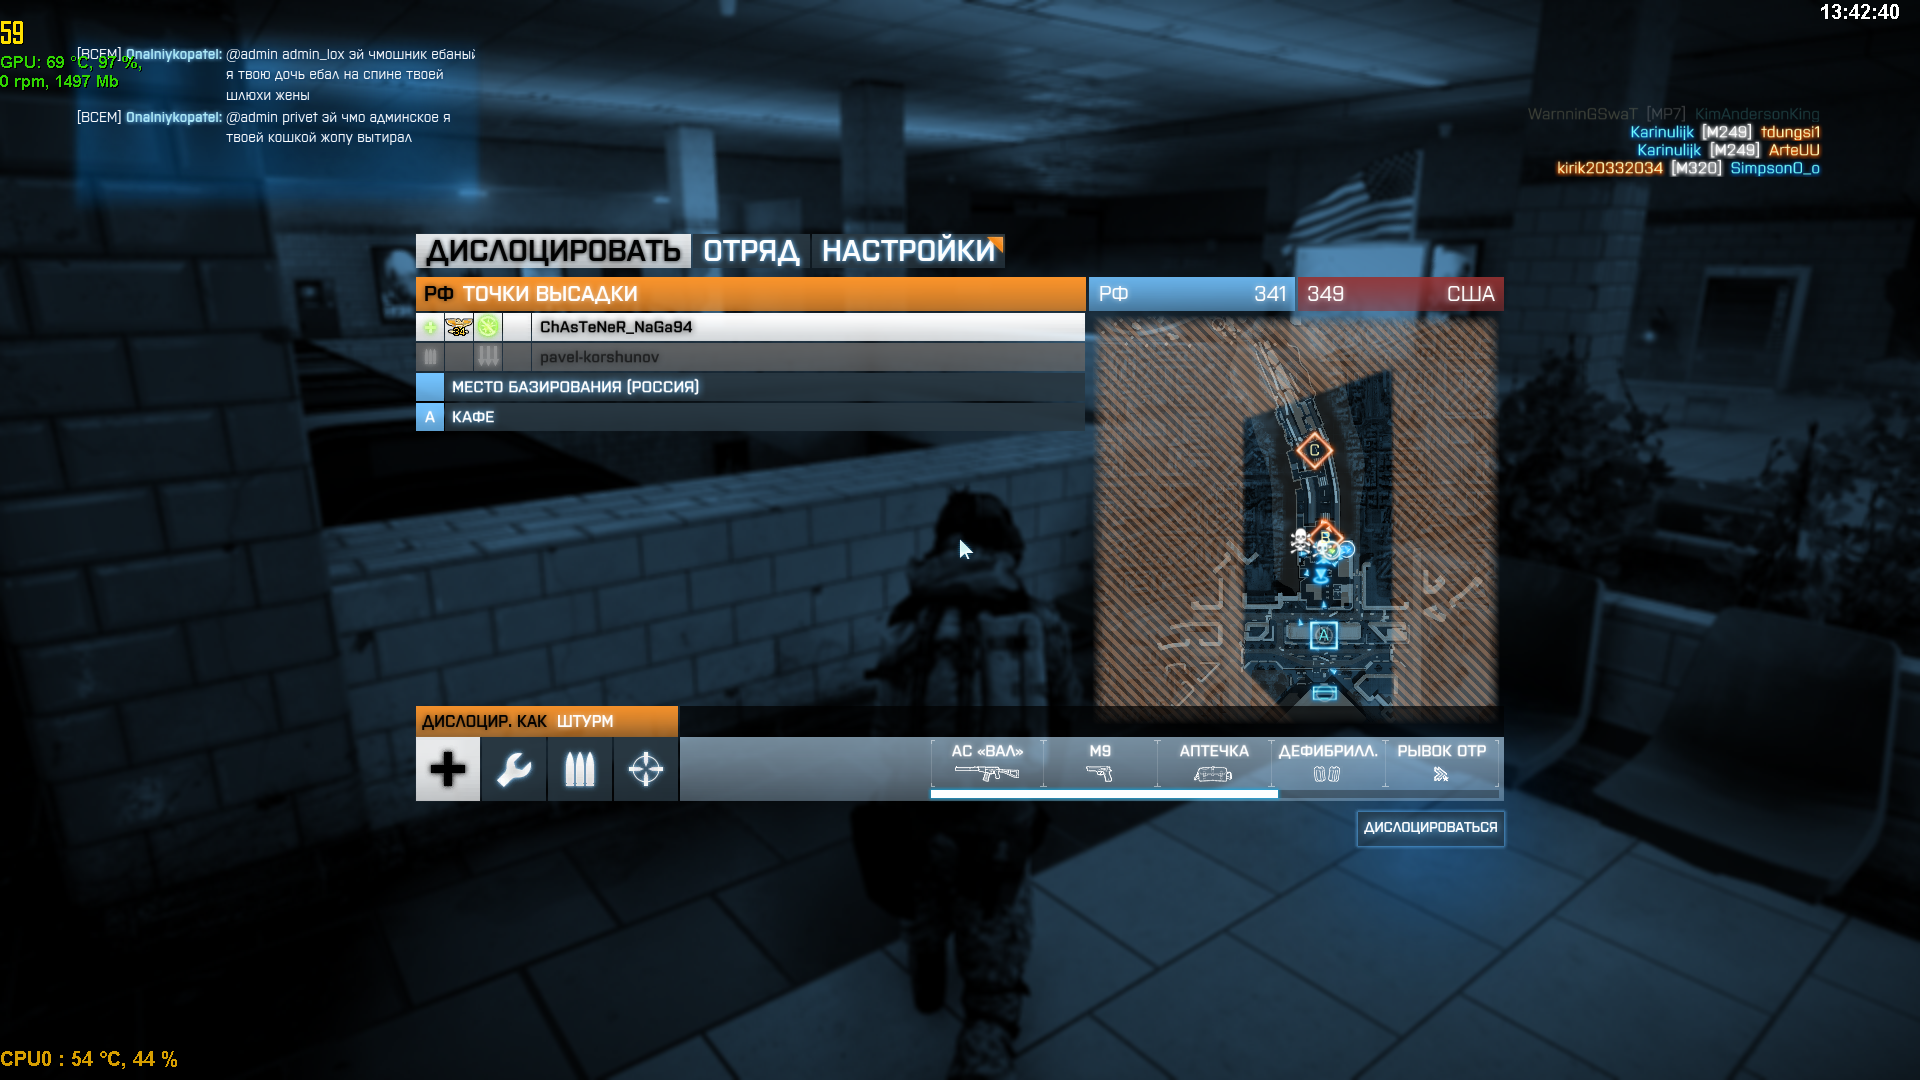 bf3_2014-11-30_13-42-40.png